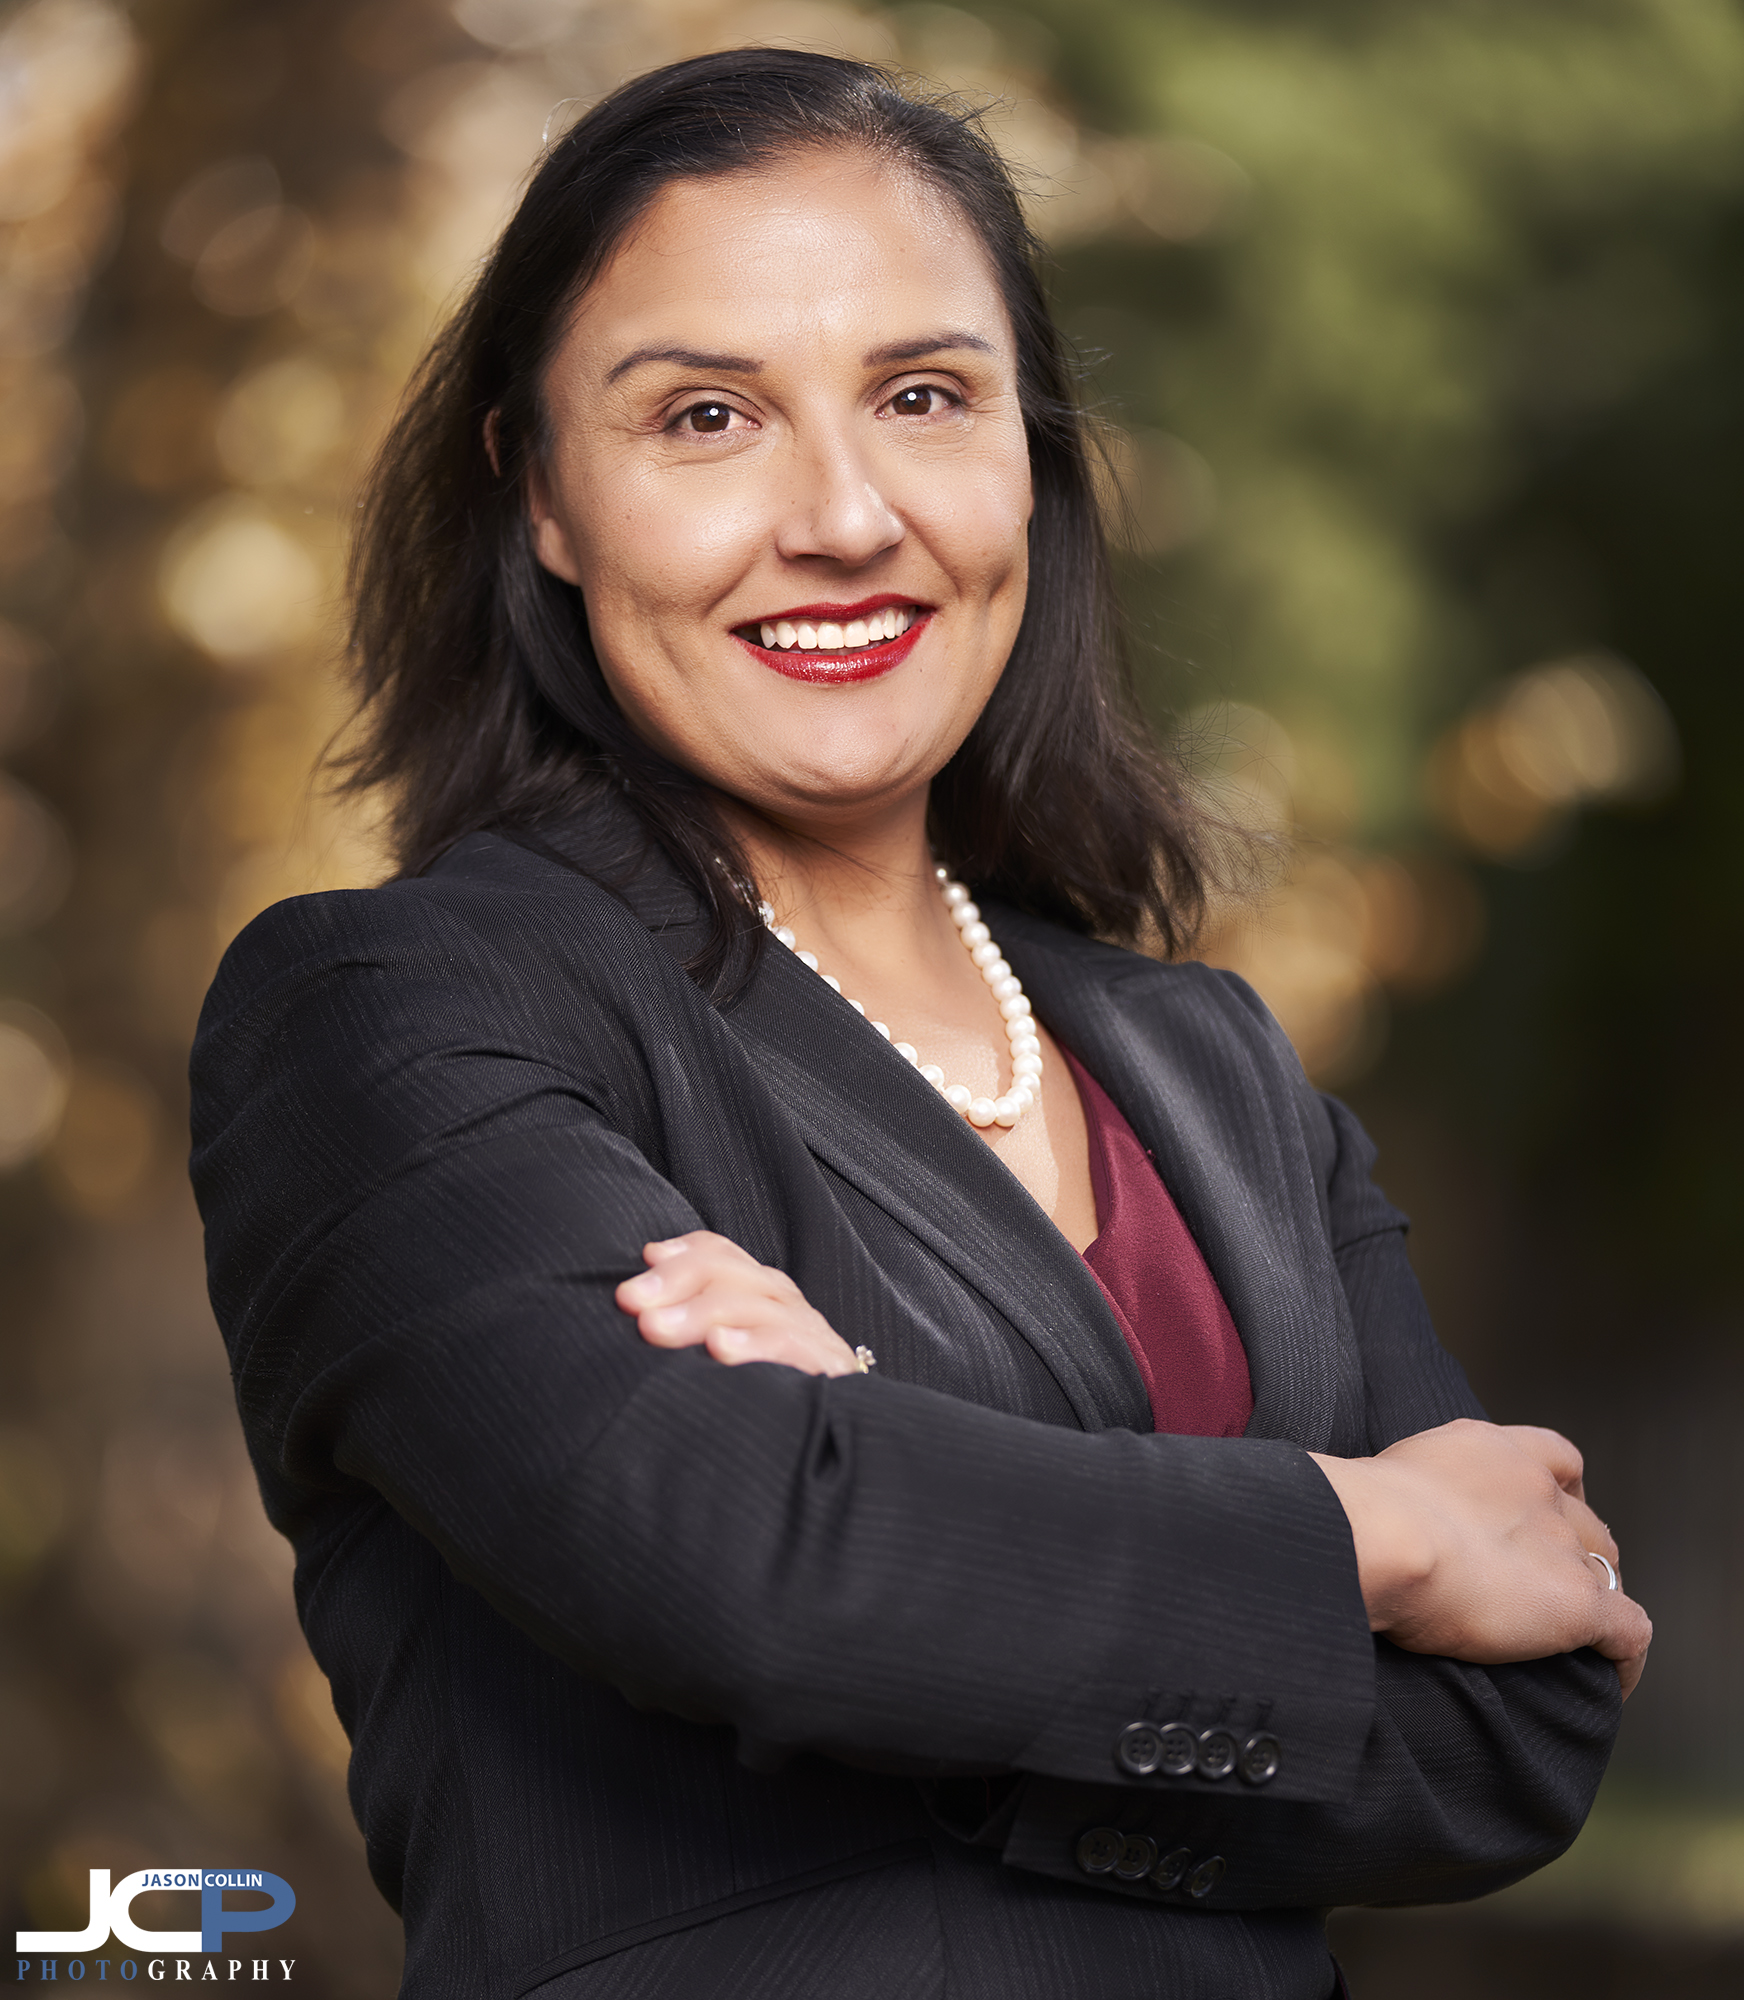 Cathedral Park in Santa Fe is the background for this political candidate portrait